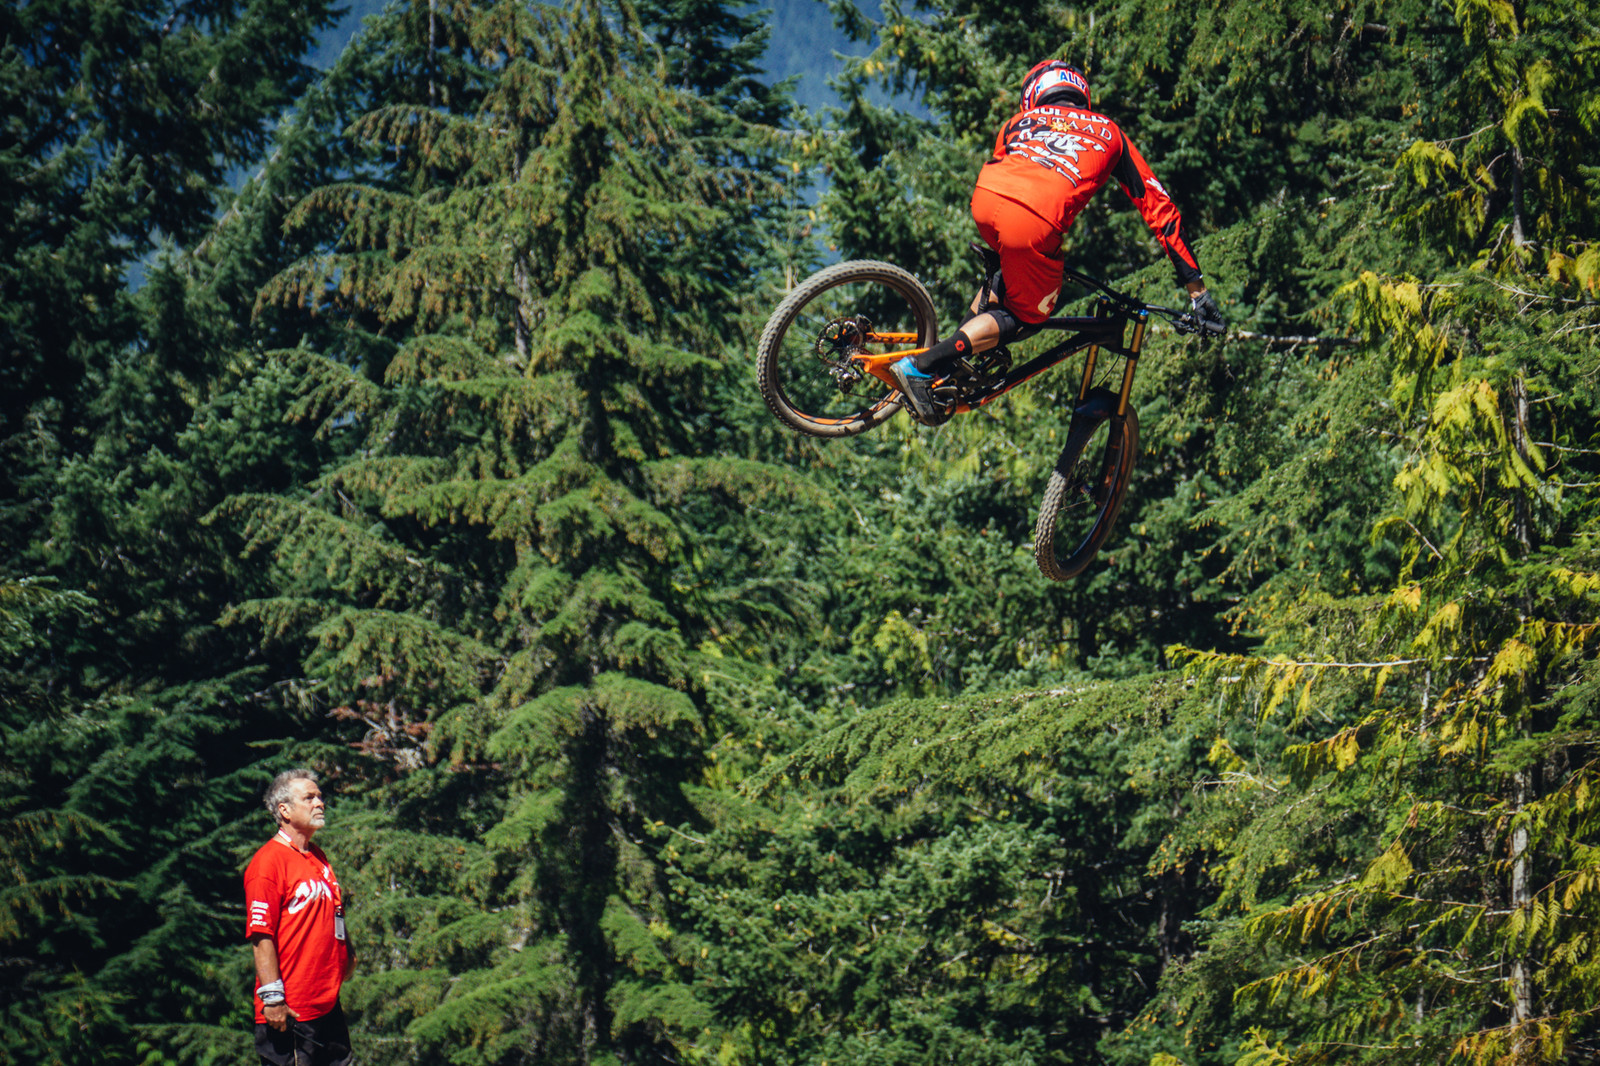 Neko Mulally - Whip Off World Champs Qualifiers - Going for Broke: 14 Super Sideways Senders from Whip Off World Champs Qualifiers - Mountain Biking Pictures - Vital MTB